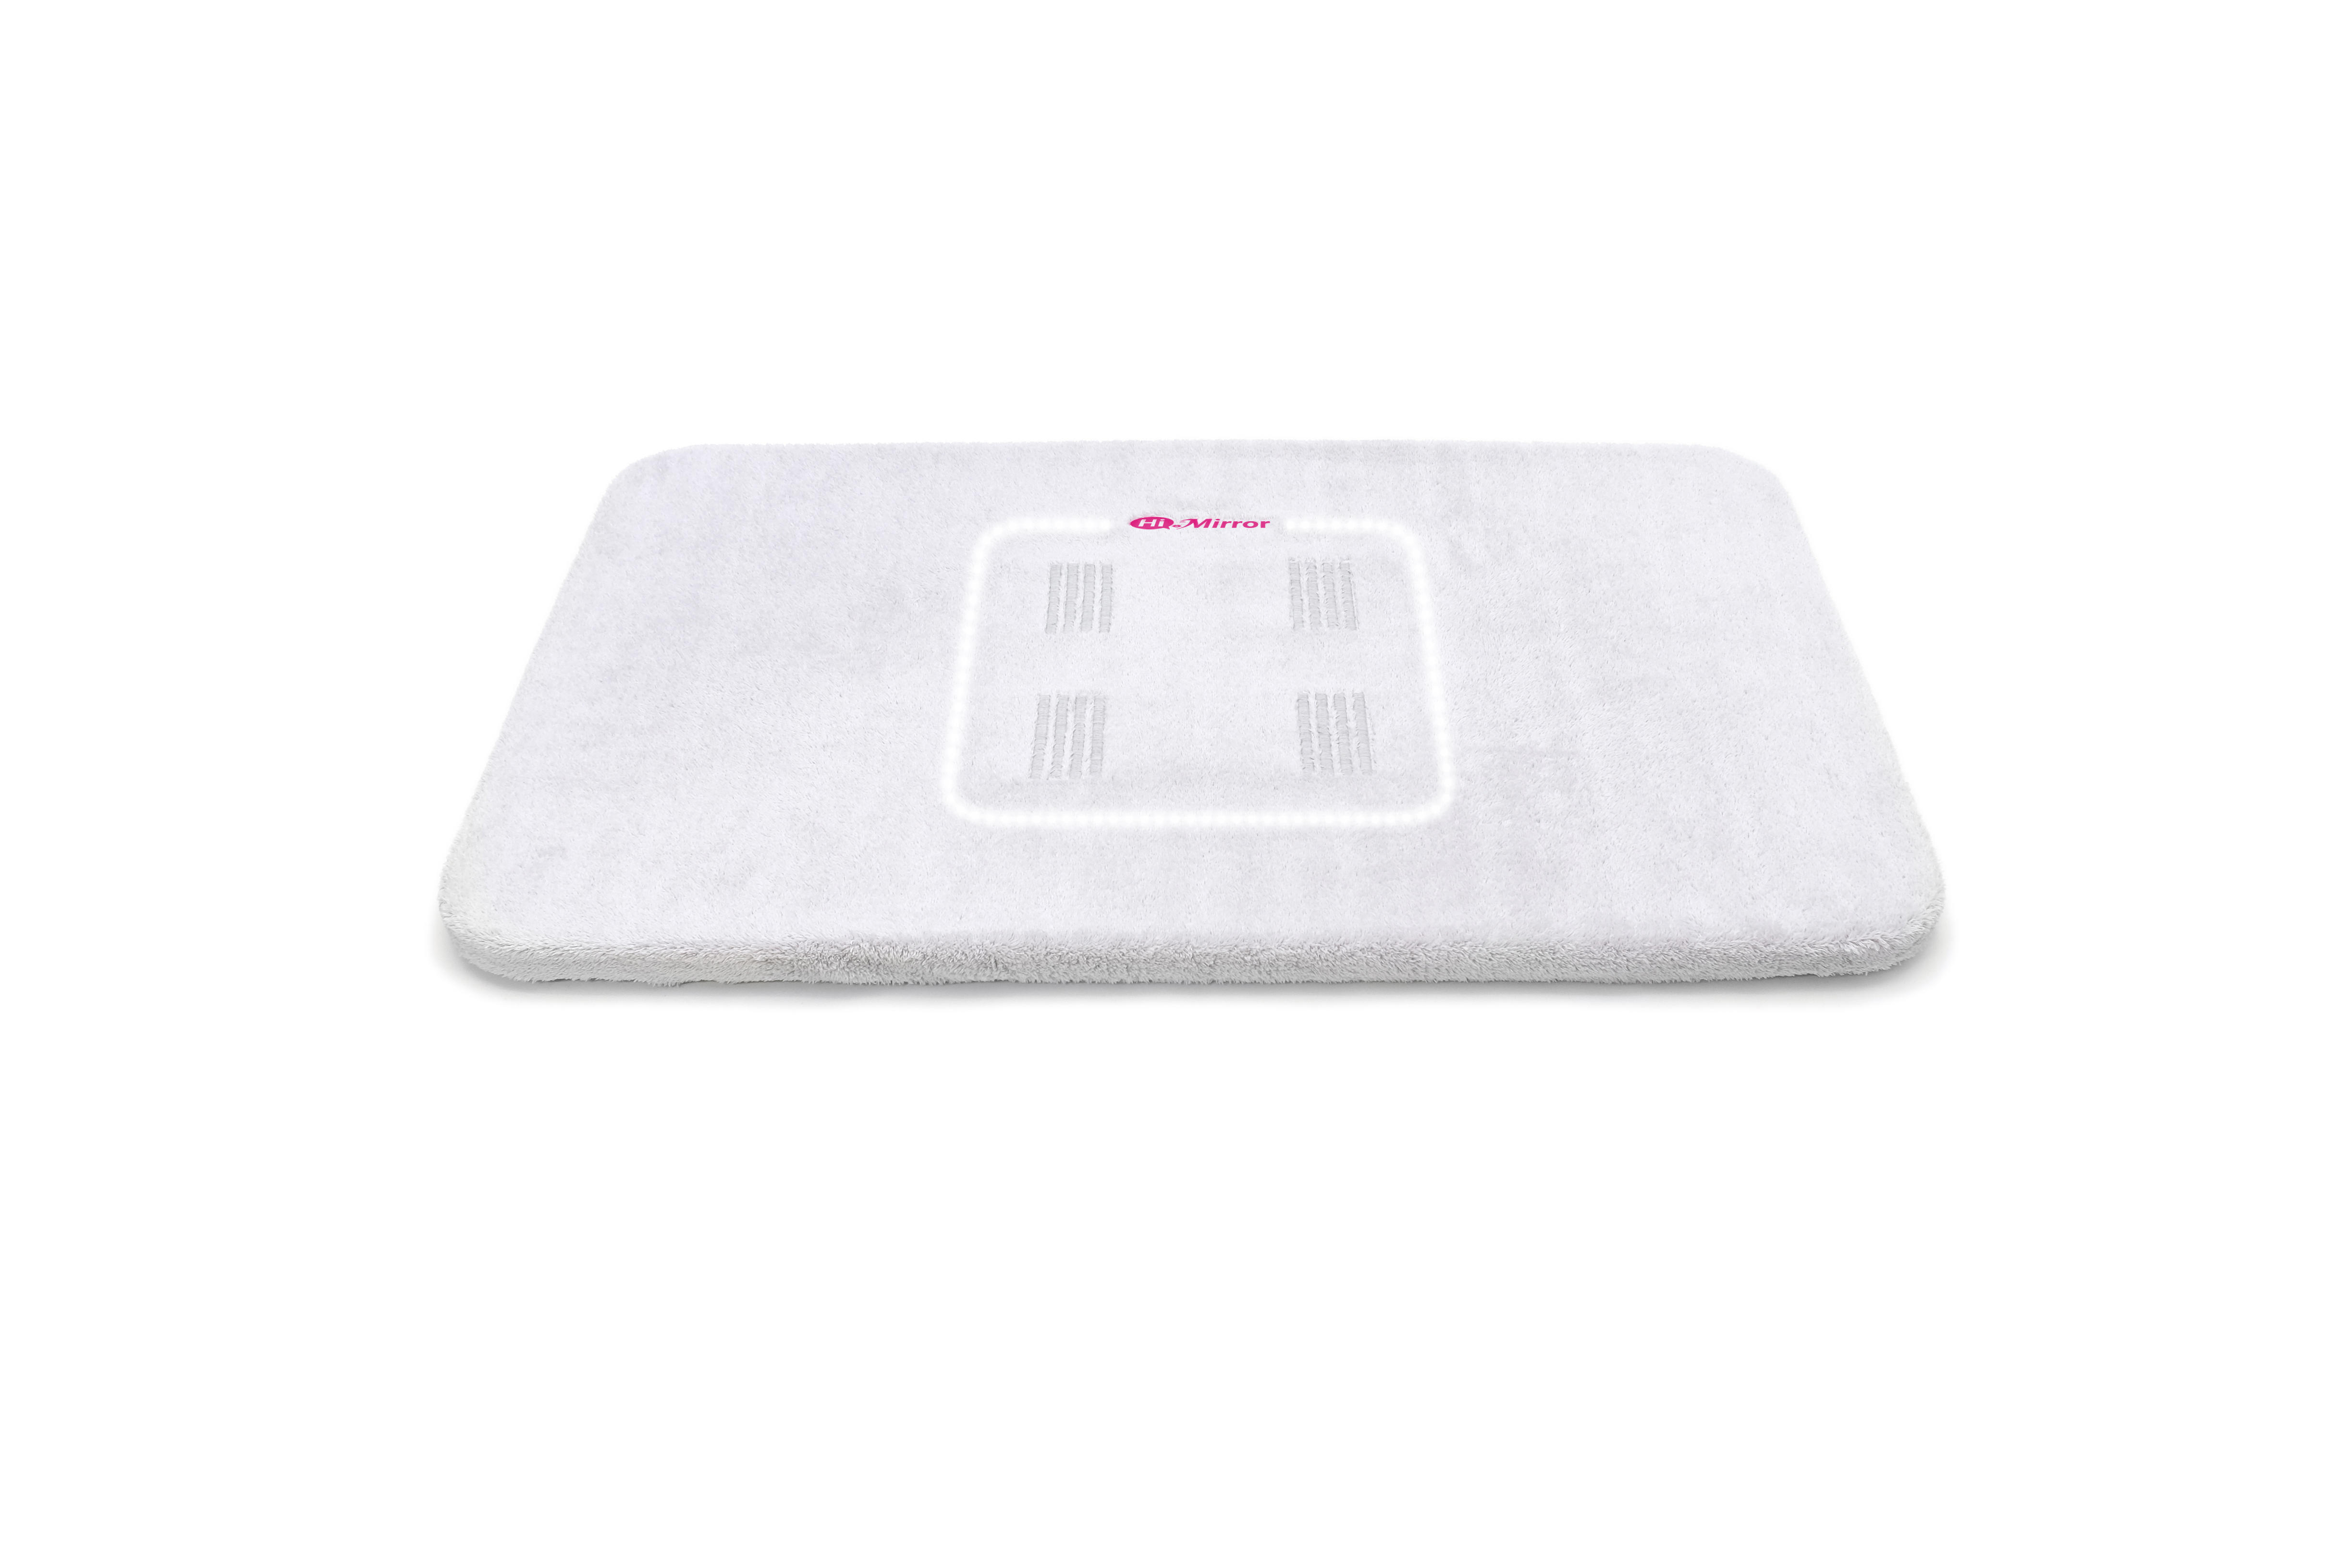 smart-body-scale-with-mat